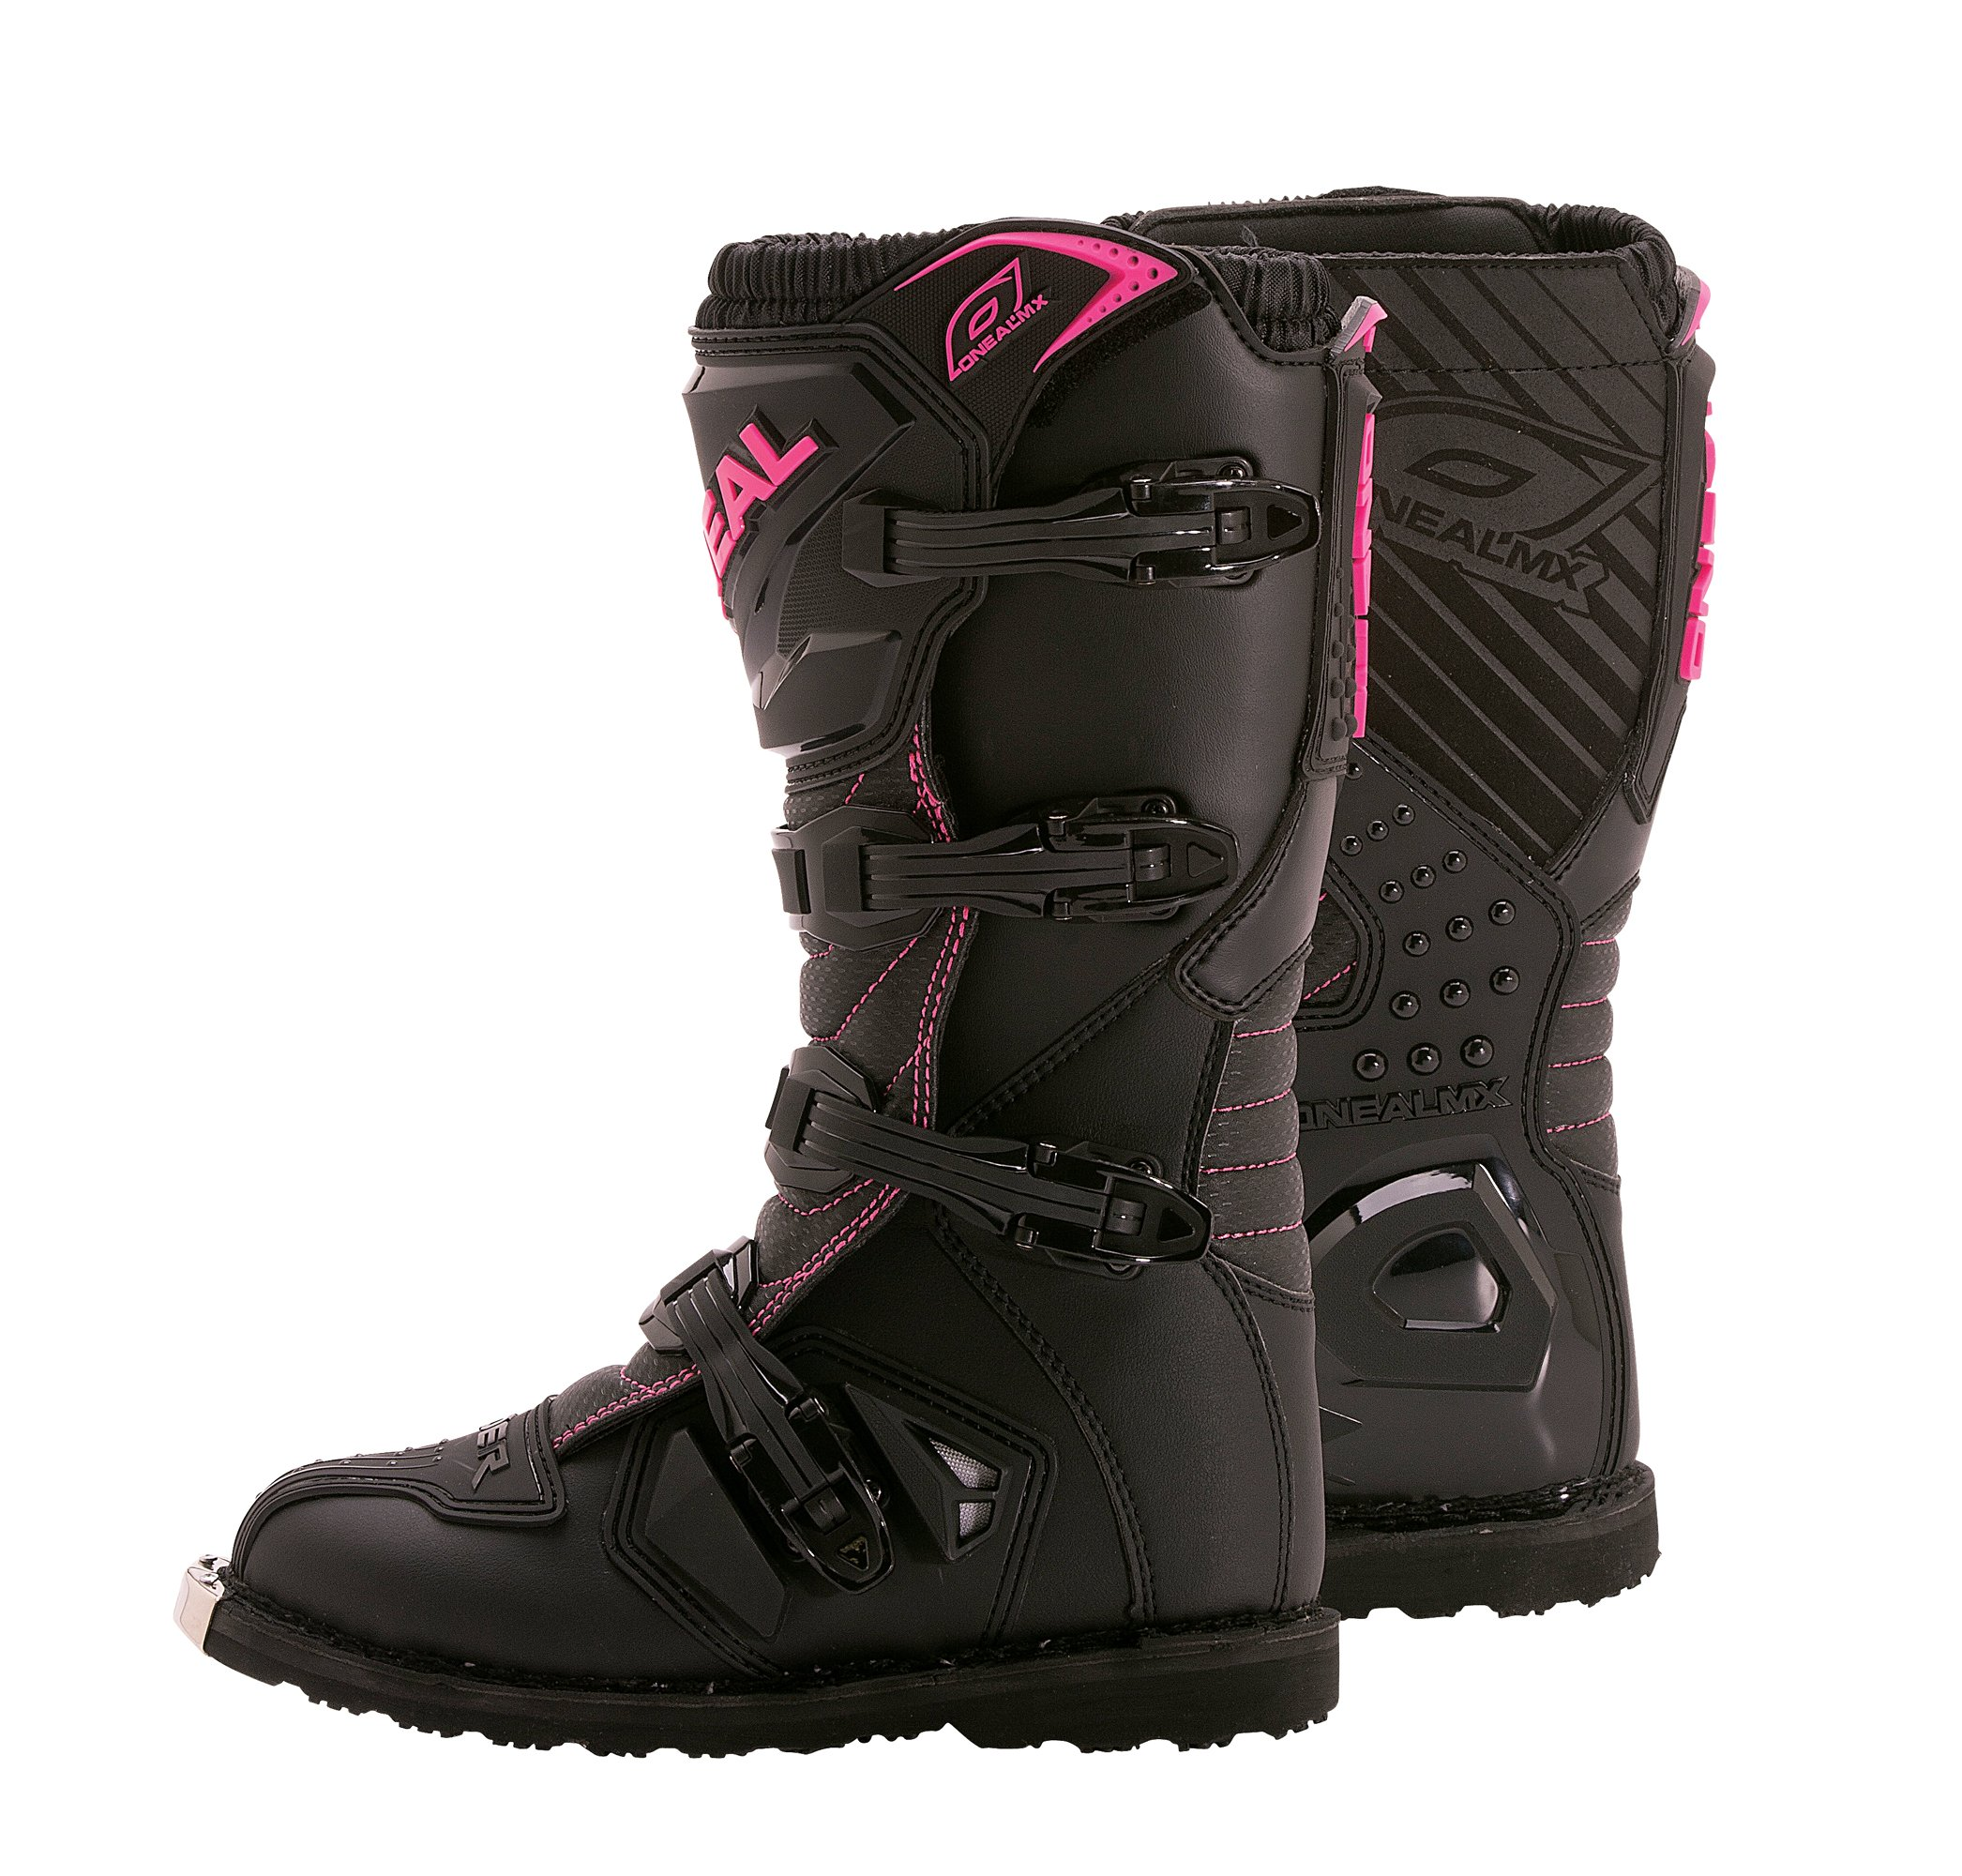 O'Neal Women's Rider Boots (Black/Pink, Size 5)